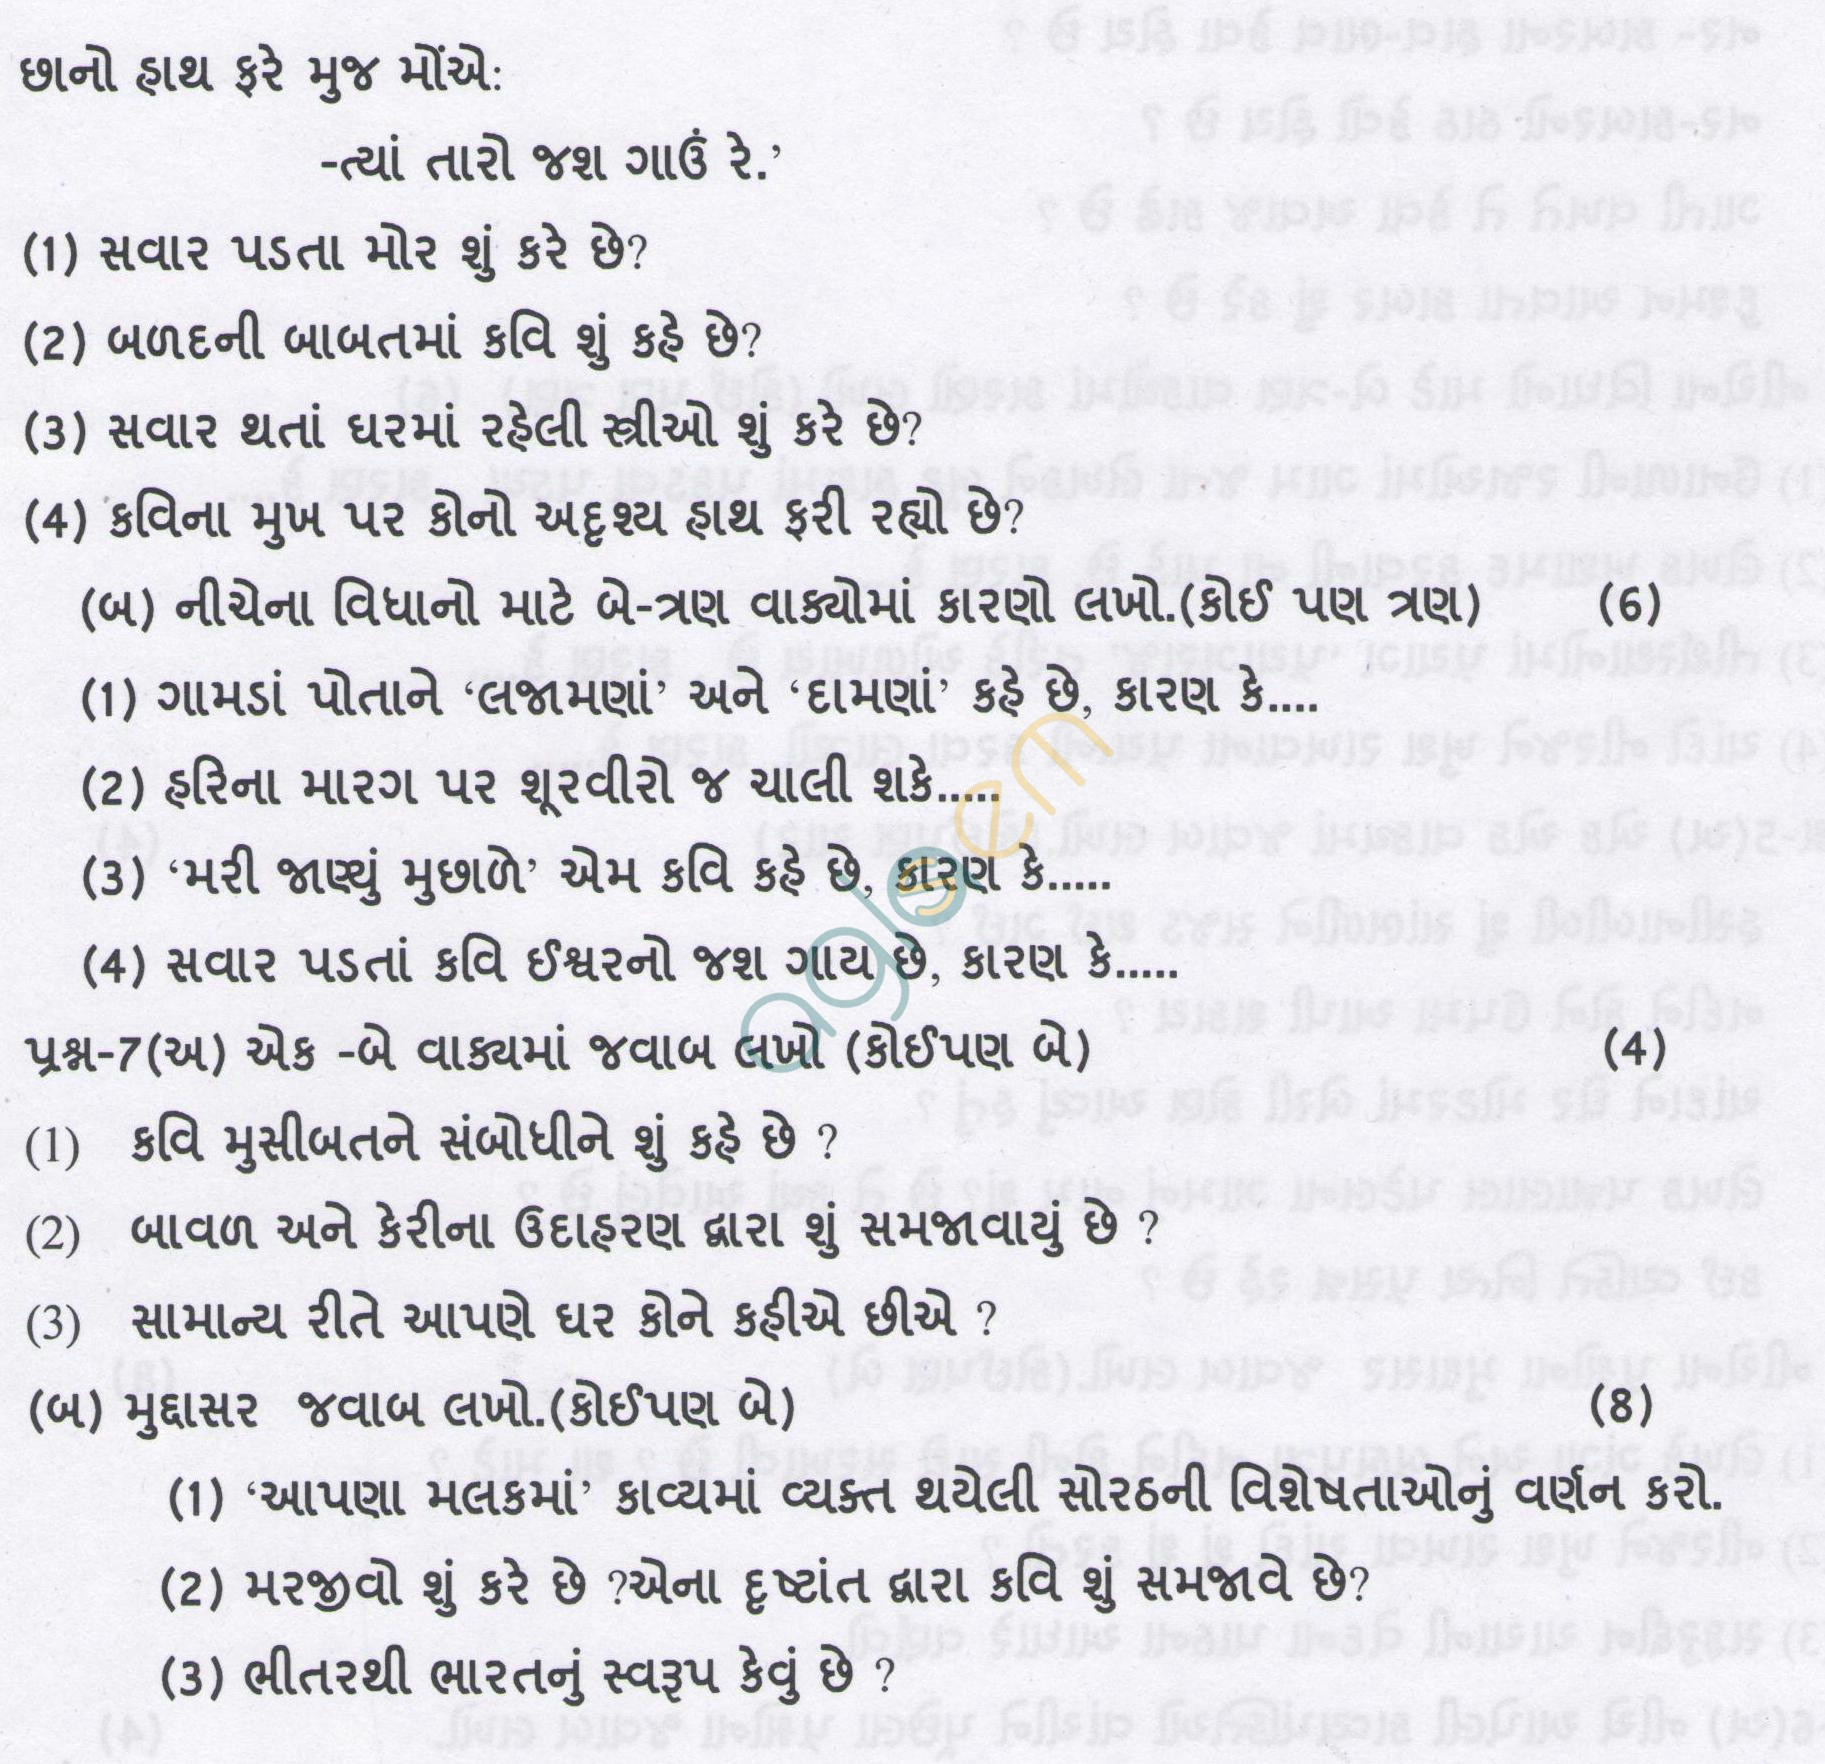 CBSE Class IX Sample Papers (Second Term) Gujarati